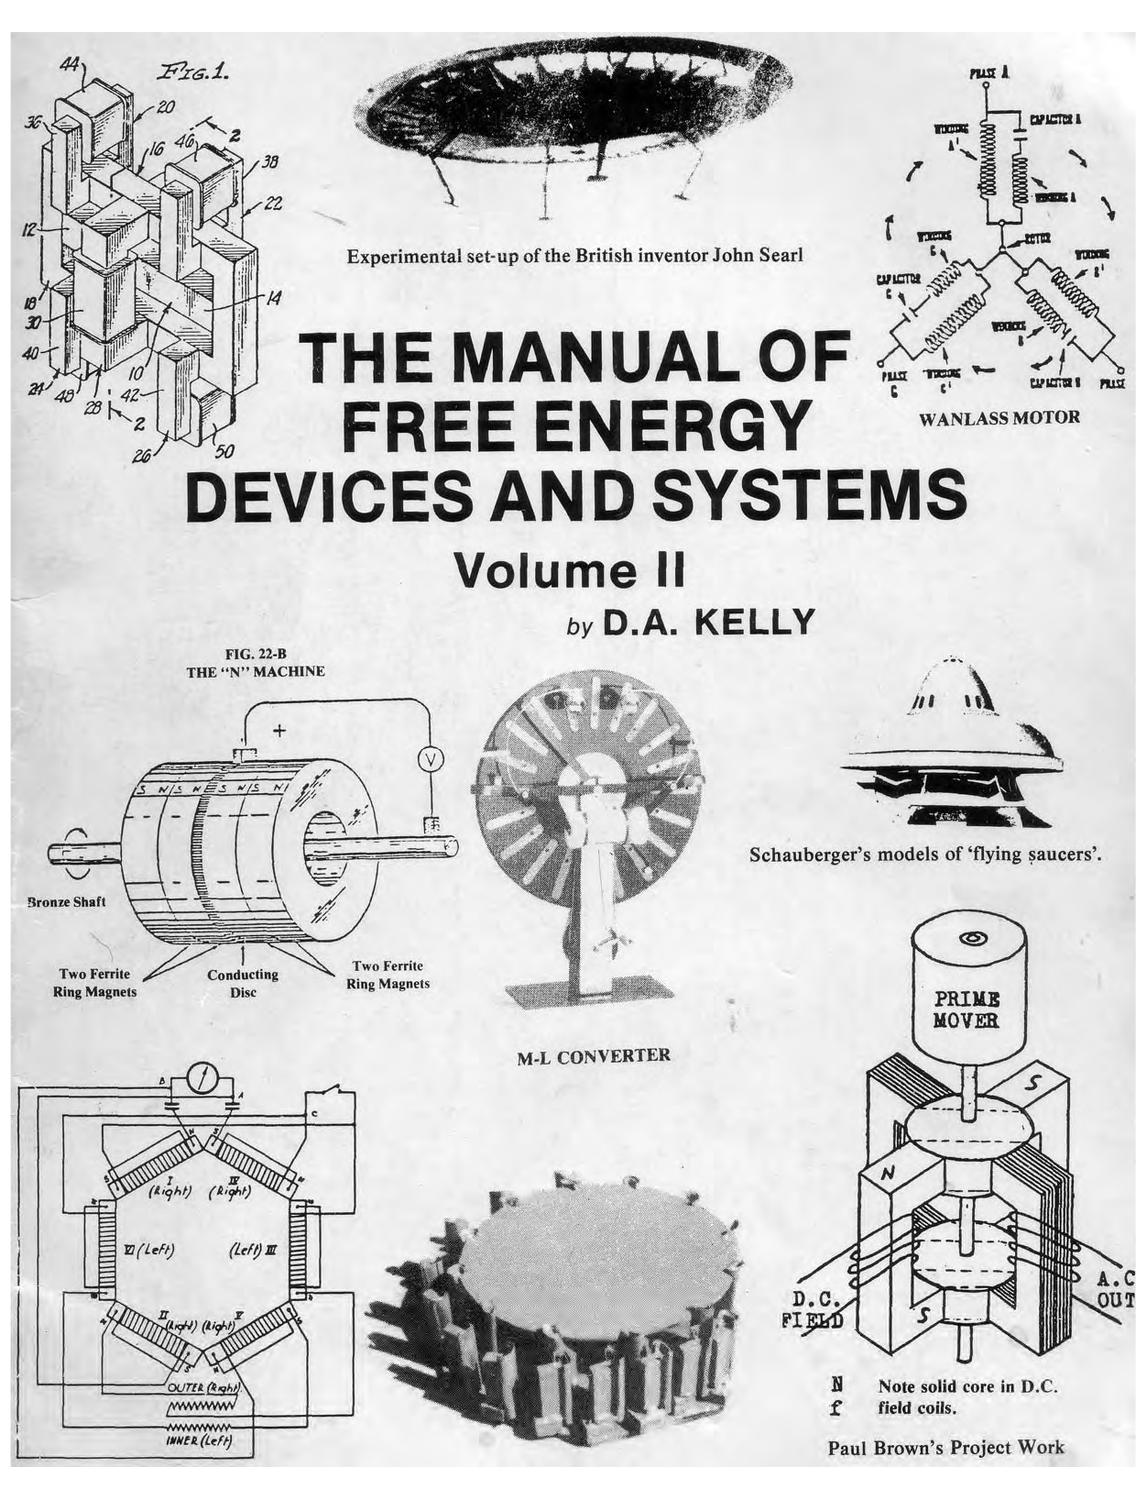 The Manual of Free Energy Devices and Systems by Adrian